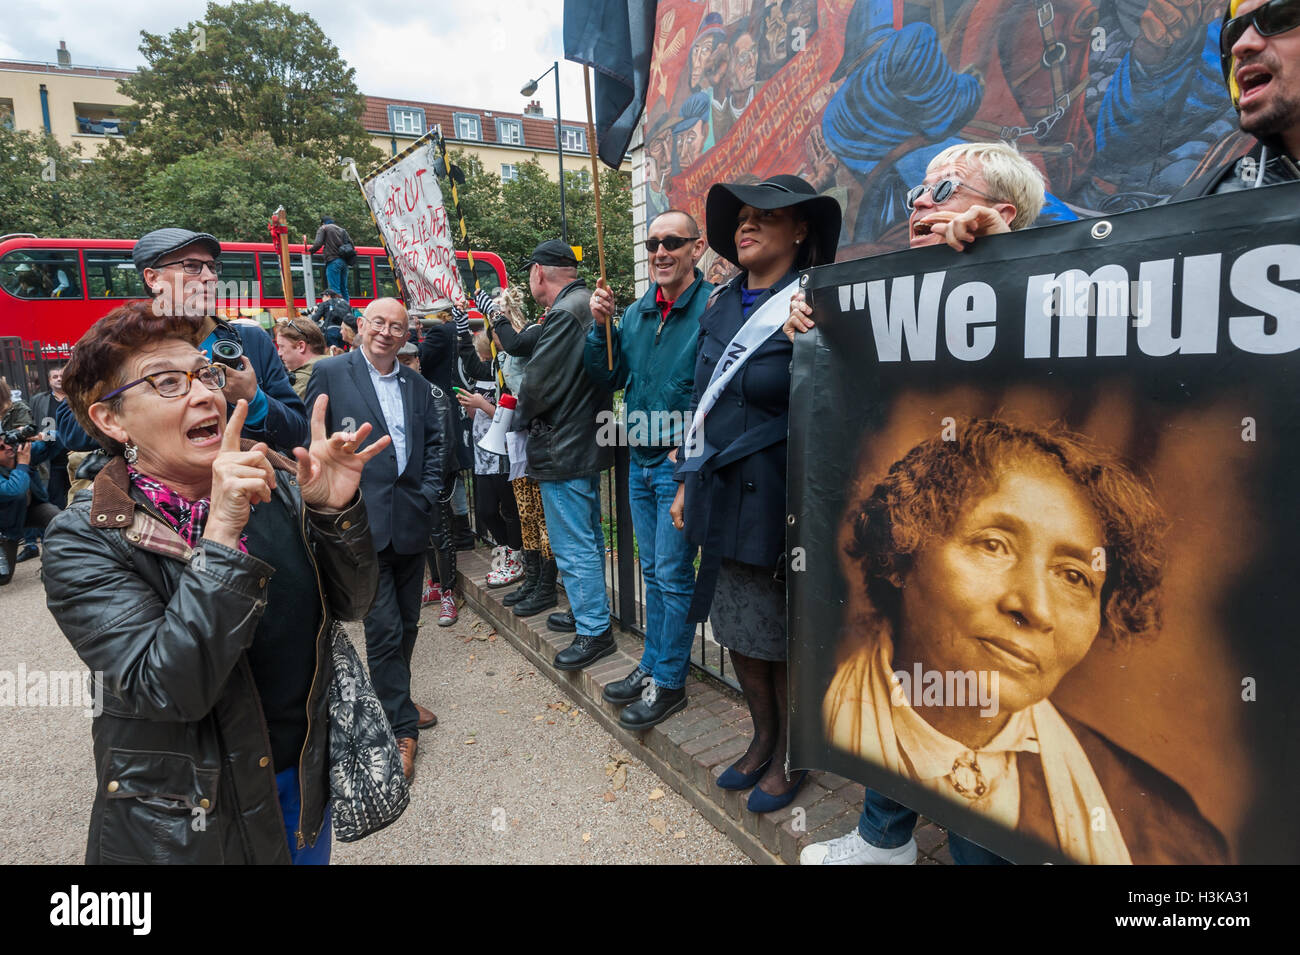 London, UK. 9th October 2016. A woman comes and talks and sings with Class War as they stand with their banners - Stock Image